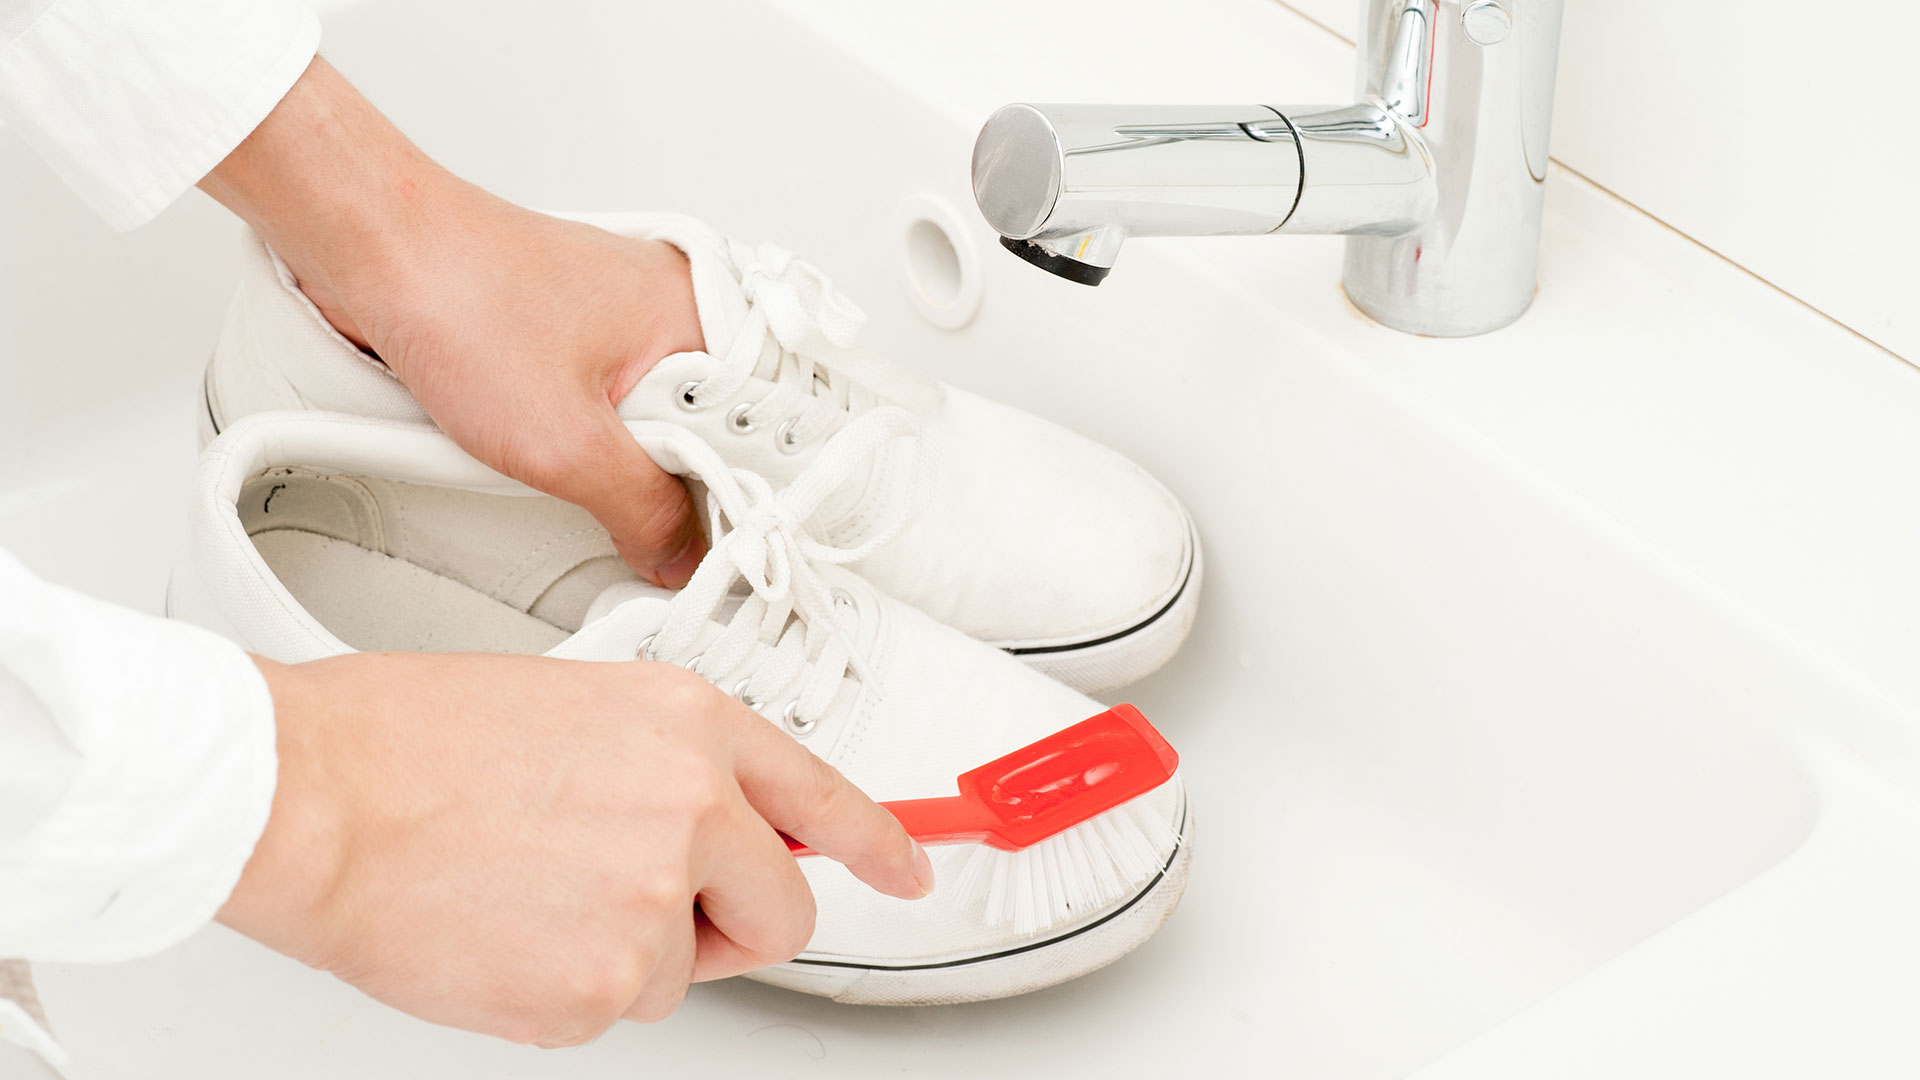 Some-easy-tips-to-clean-your-white-shoes-1